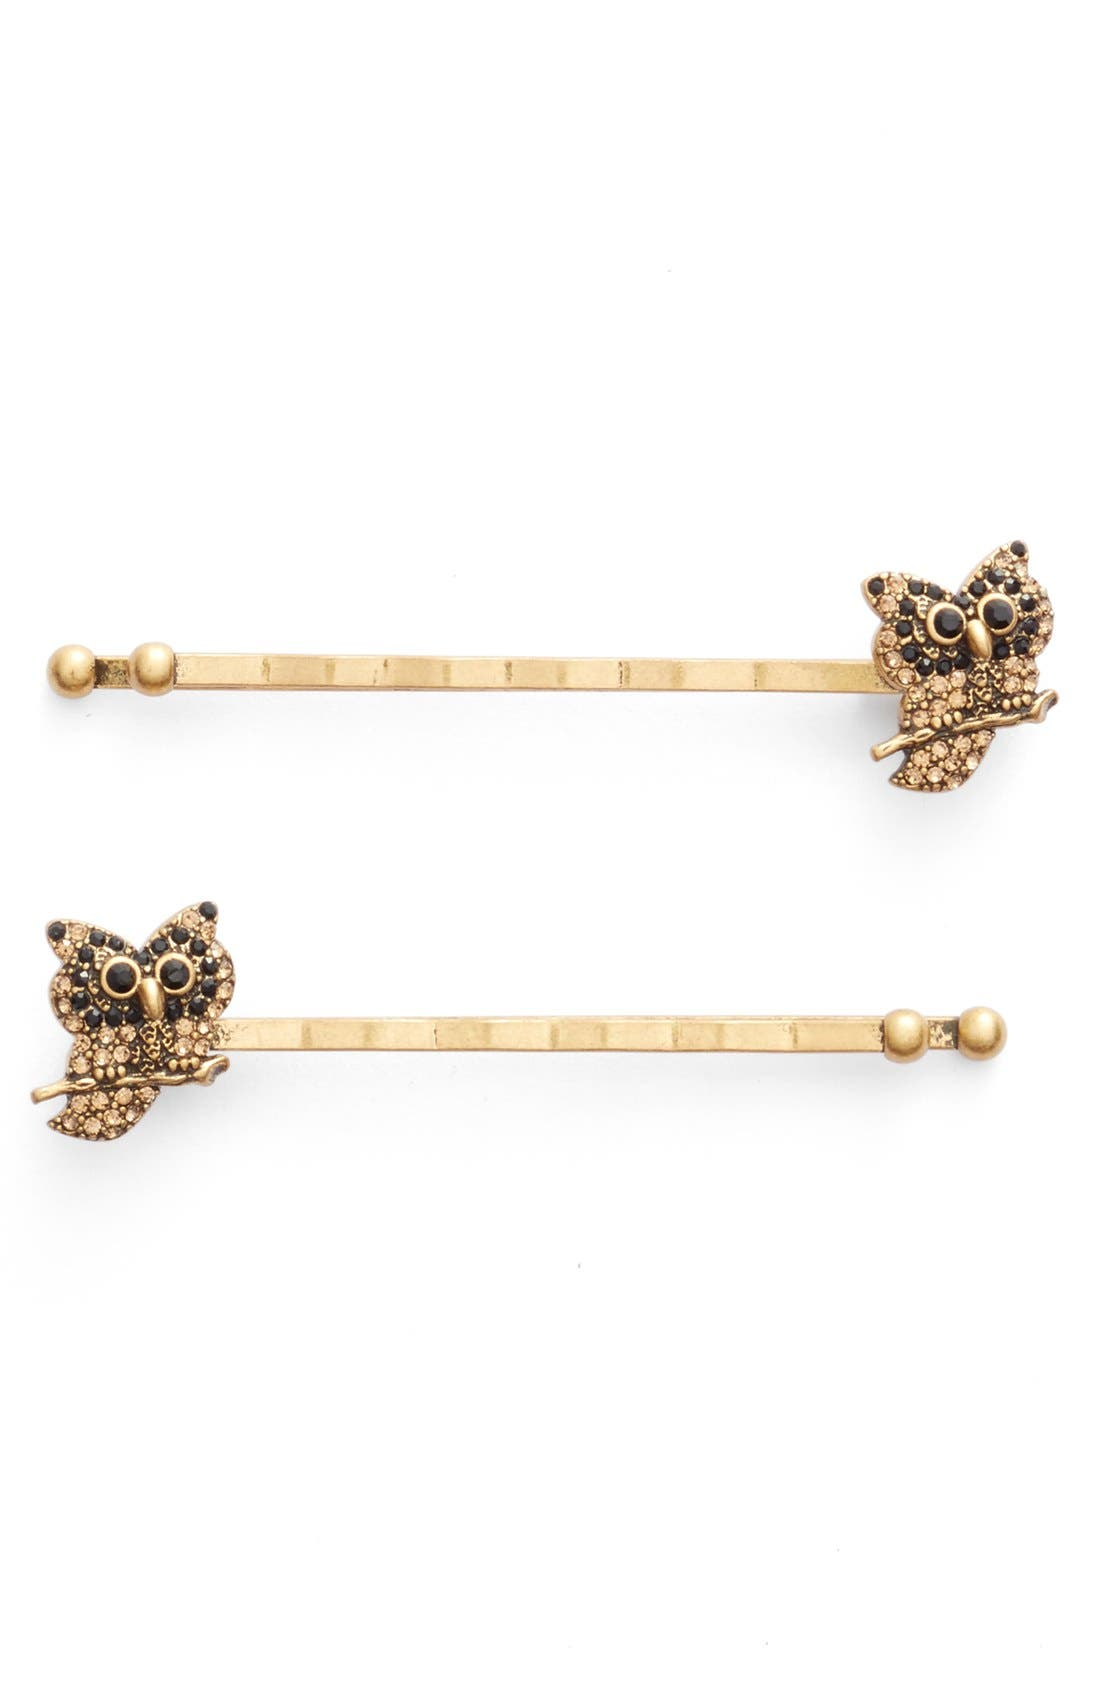 Alternate Image 1 Selected - MARC JACOBS 'Owl' Bobby Pins (Set of 2)